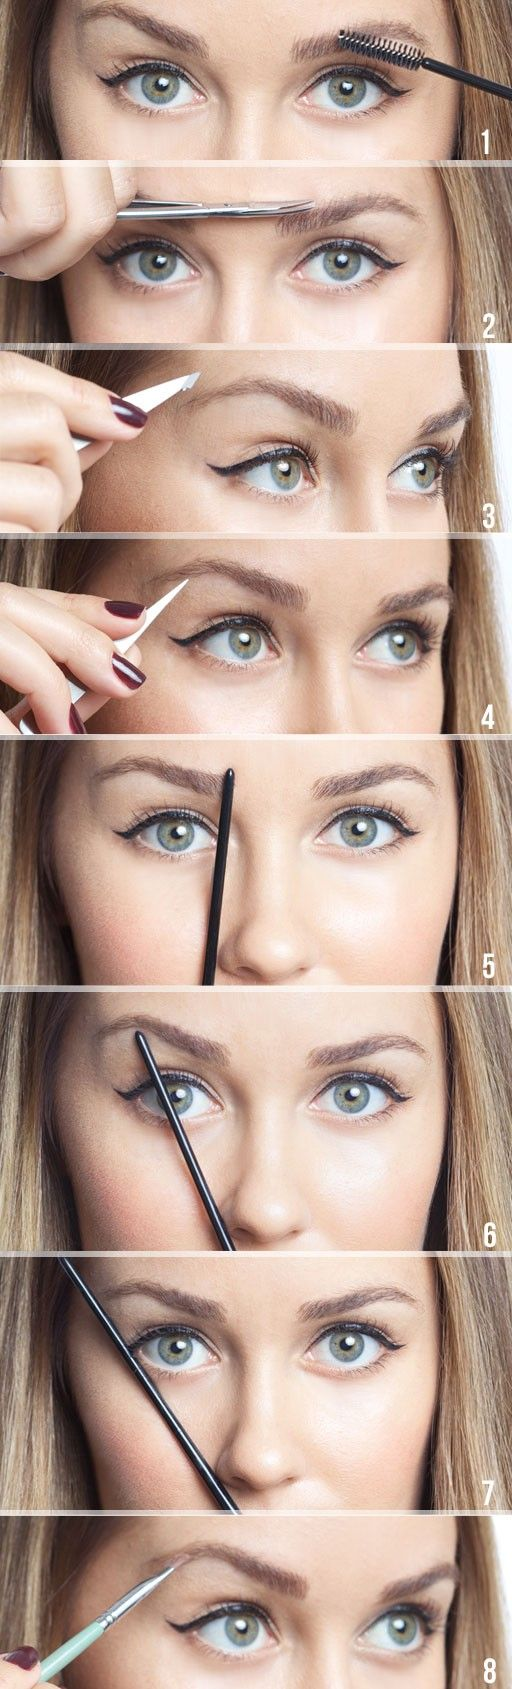 Properly shaped eyebrows. I don't trim my brows, I like my natural length but following the start, arch and stopping points is imperative for perfectly shaped eyebrows! Your eye is the perfect guide for the brows that best suite you!